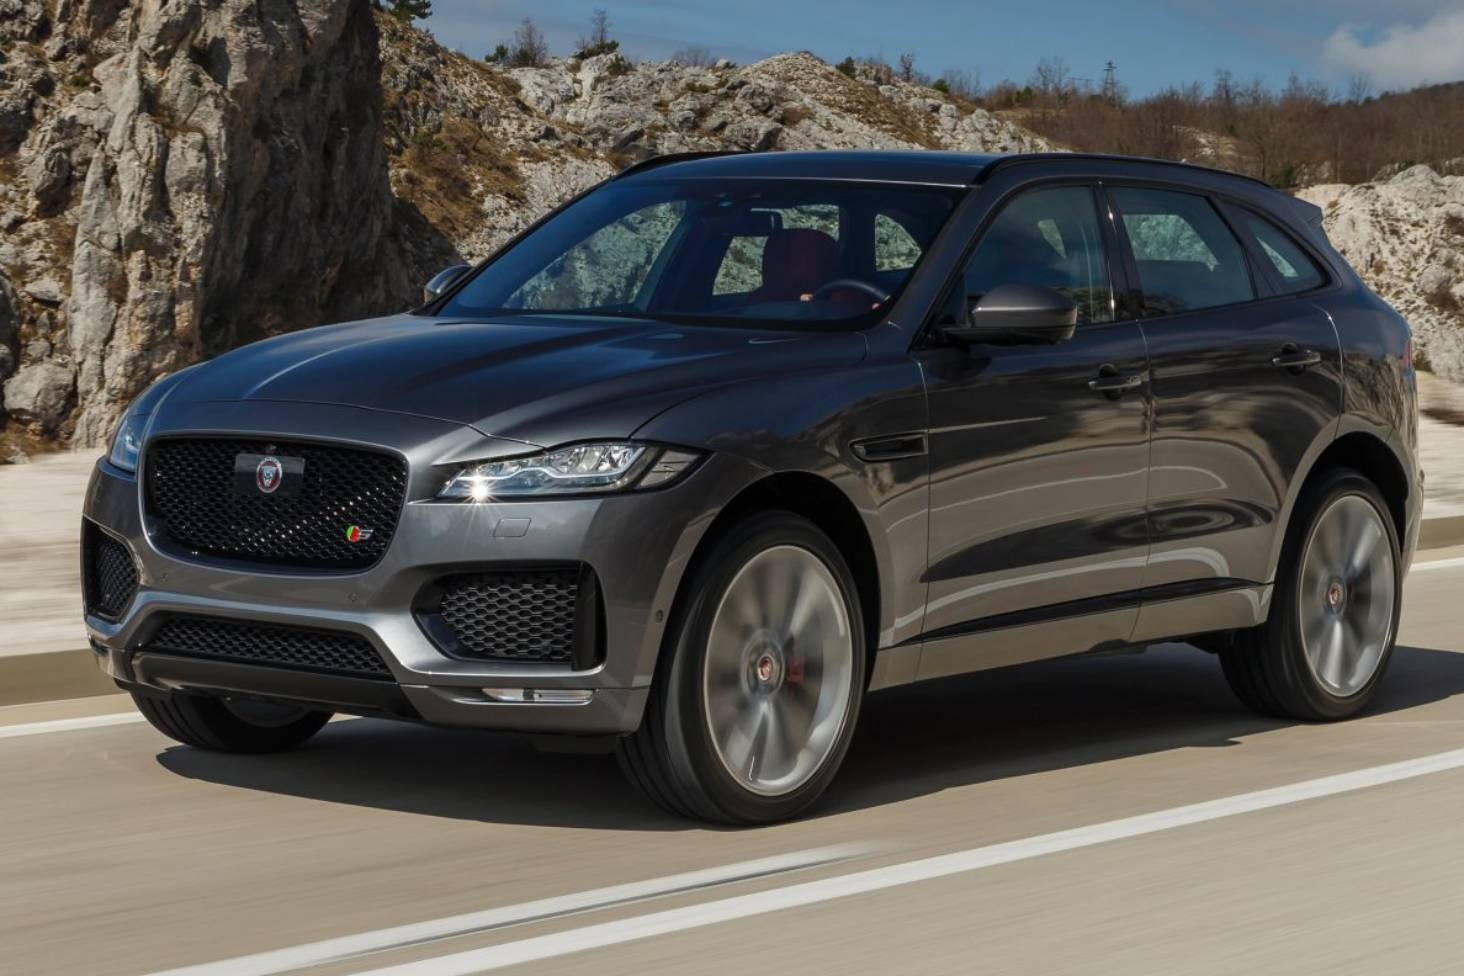 Jaguar F Pace Takes The Road Already Travelled By Storm Stuff Co Nz